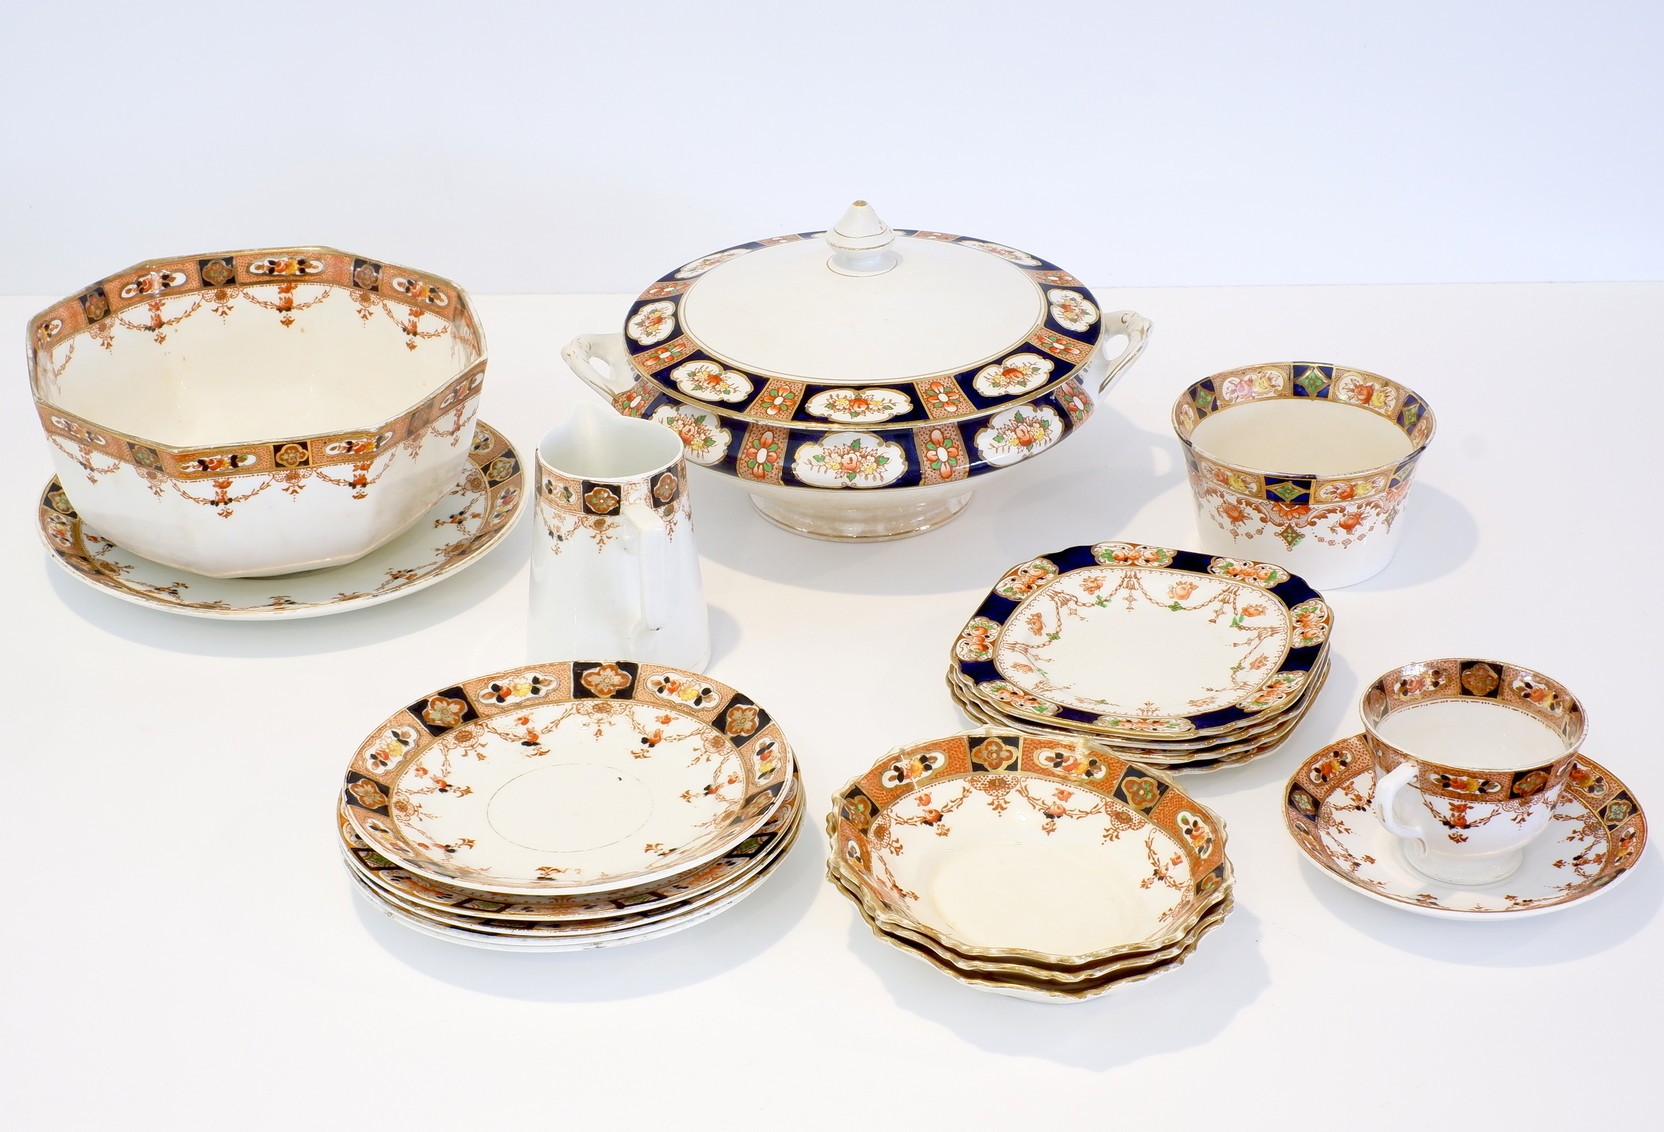 'Group of Various Phoenix Ware and Royal Stafford China in a Similar Pattern'